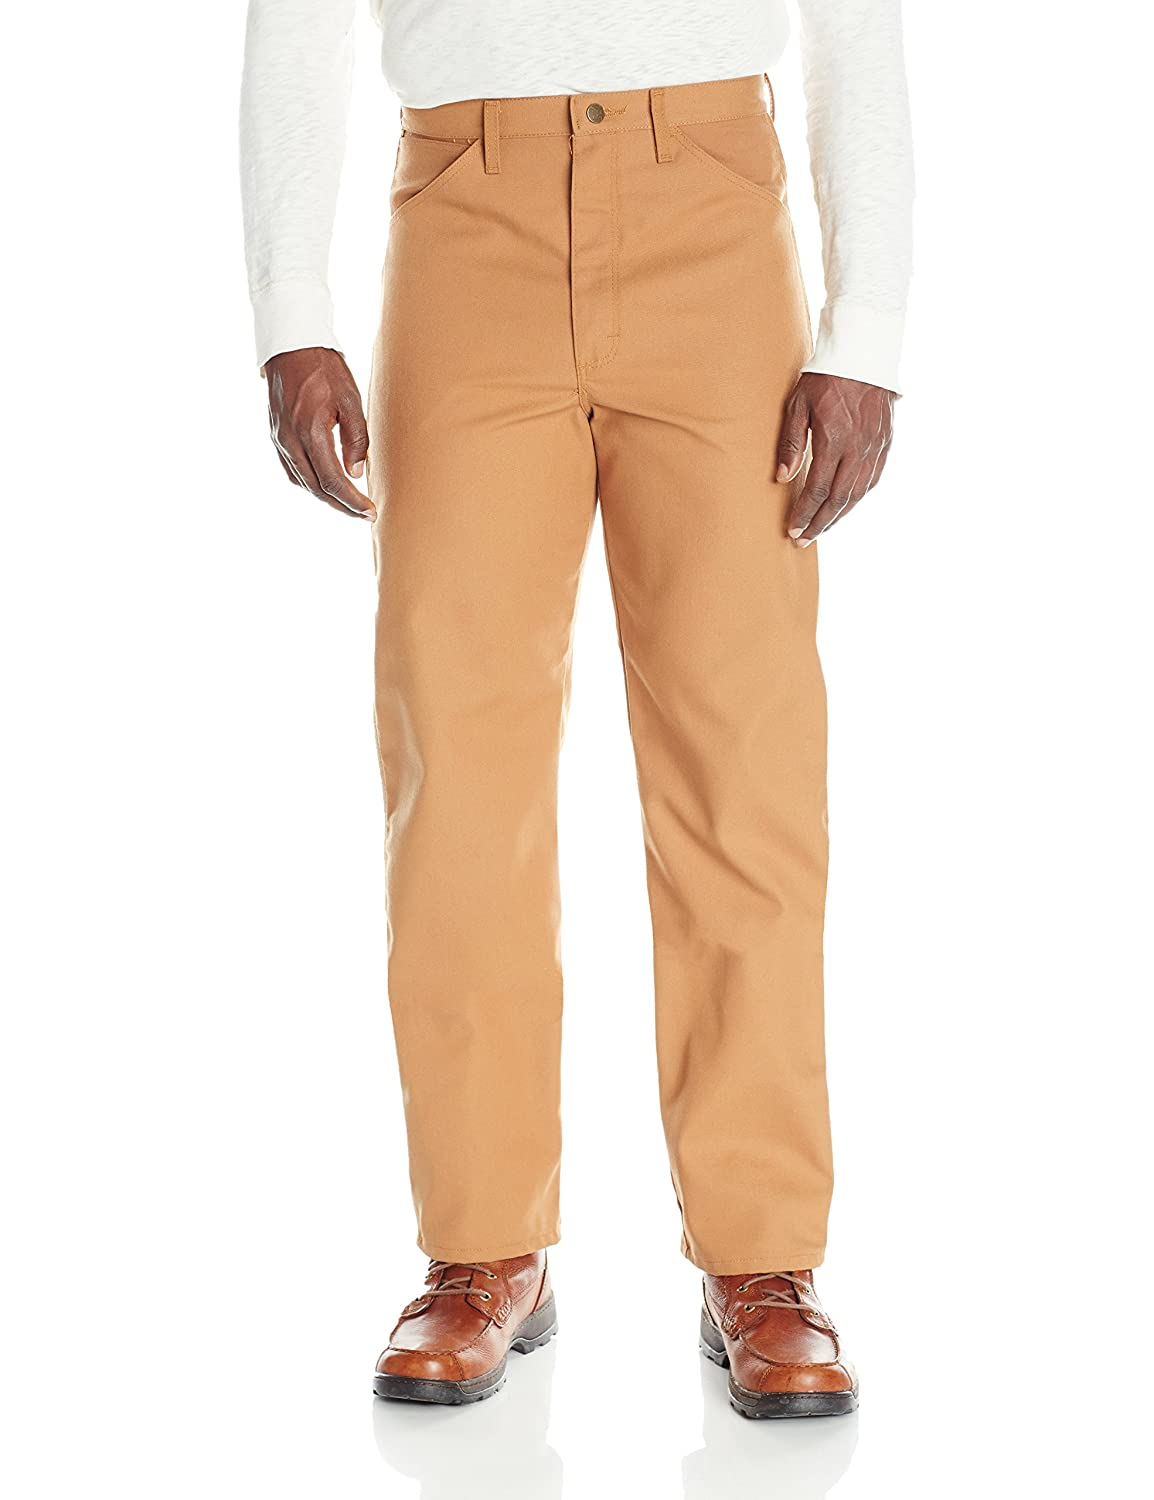 Other Agriculture & Forestry Sunny Bridge Personnel Pants Blue Sz 58 60 Waterproof Trousers Wet Weather Protection Reasonable Price